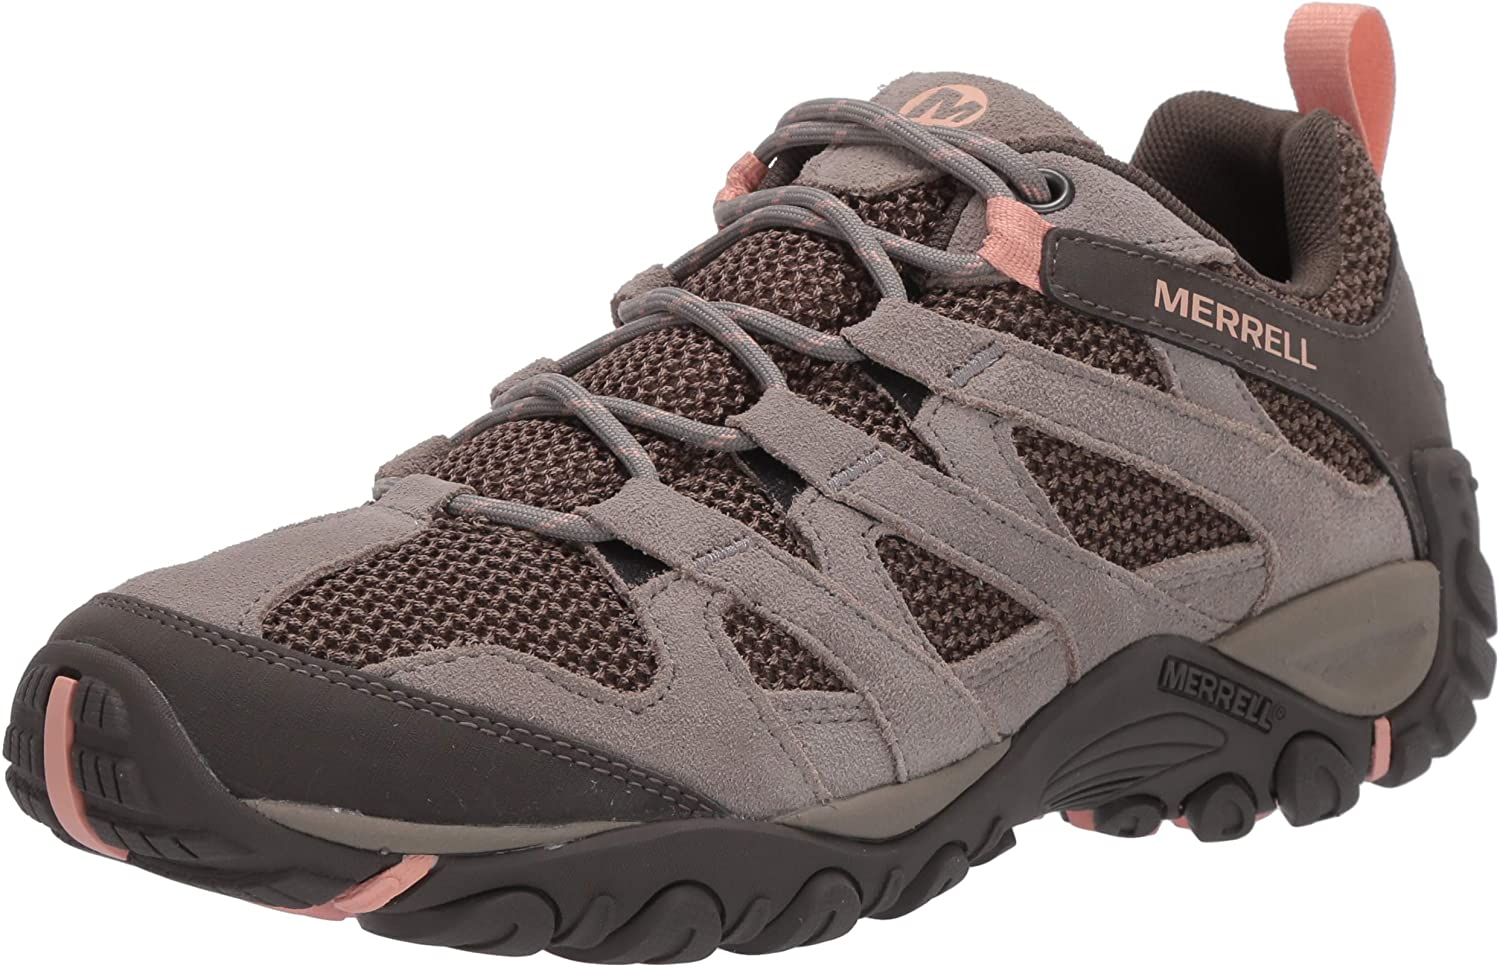 Merrell Womens J033034 Hiking Boot